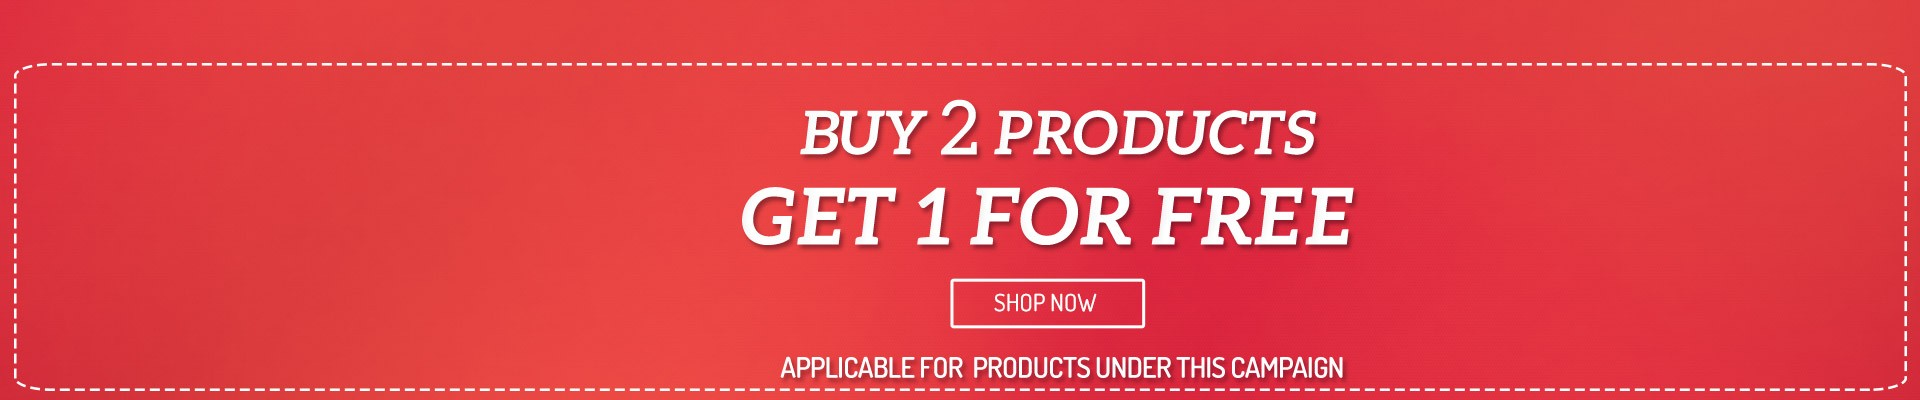 Buy 2 products get 1 for free